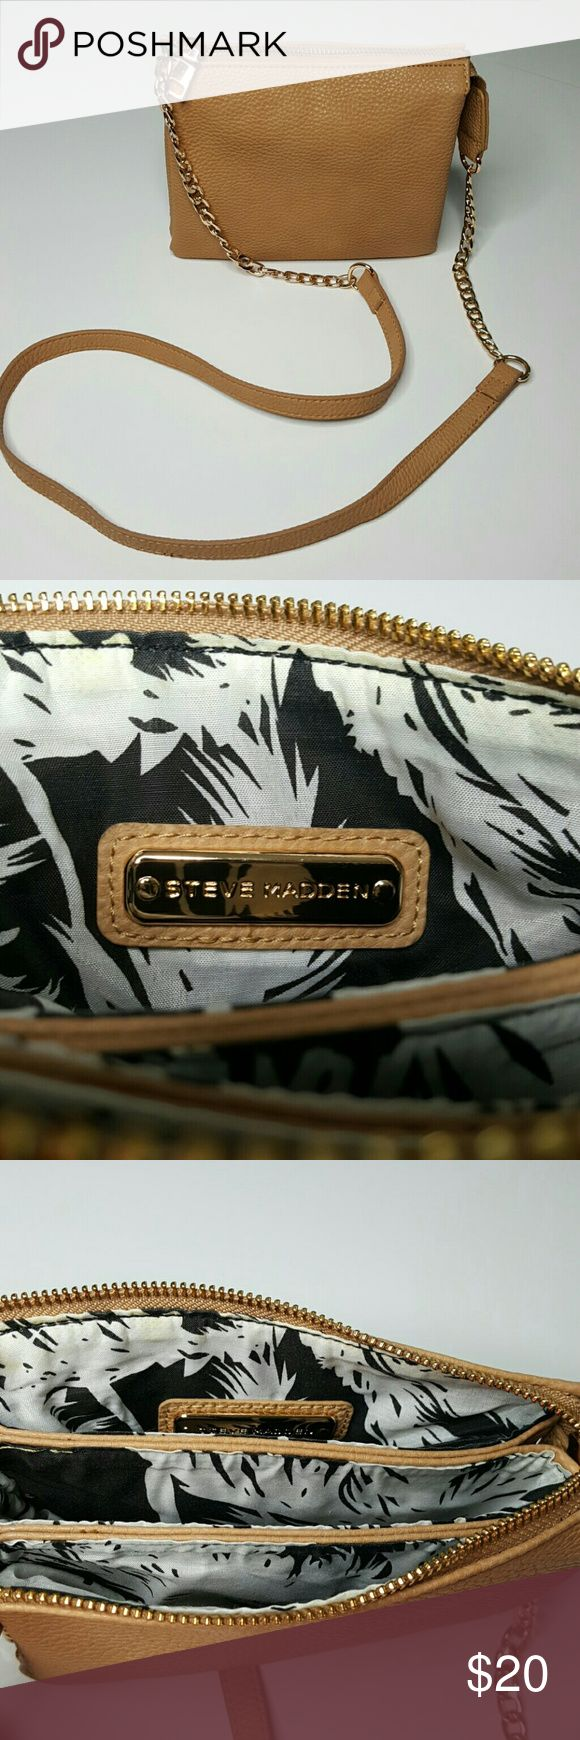 Steve Madden Crossbody purse $20 Steve Madden Crossbody purse with gold change accents on shoulder straps. I bought it and never used it but I took the tags off. Great condition.  $20 Steve Madden Bags Crossbody Bags